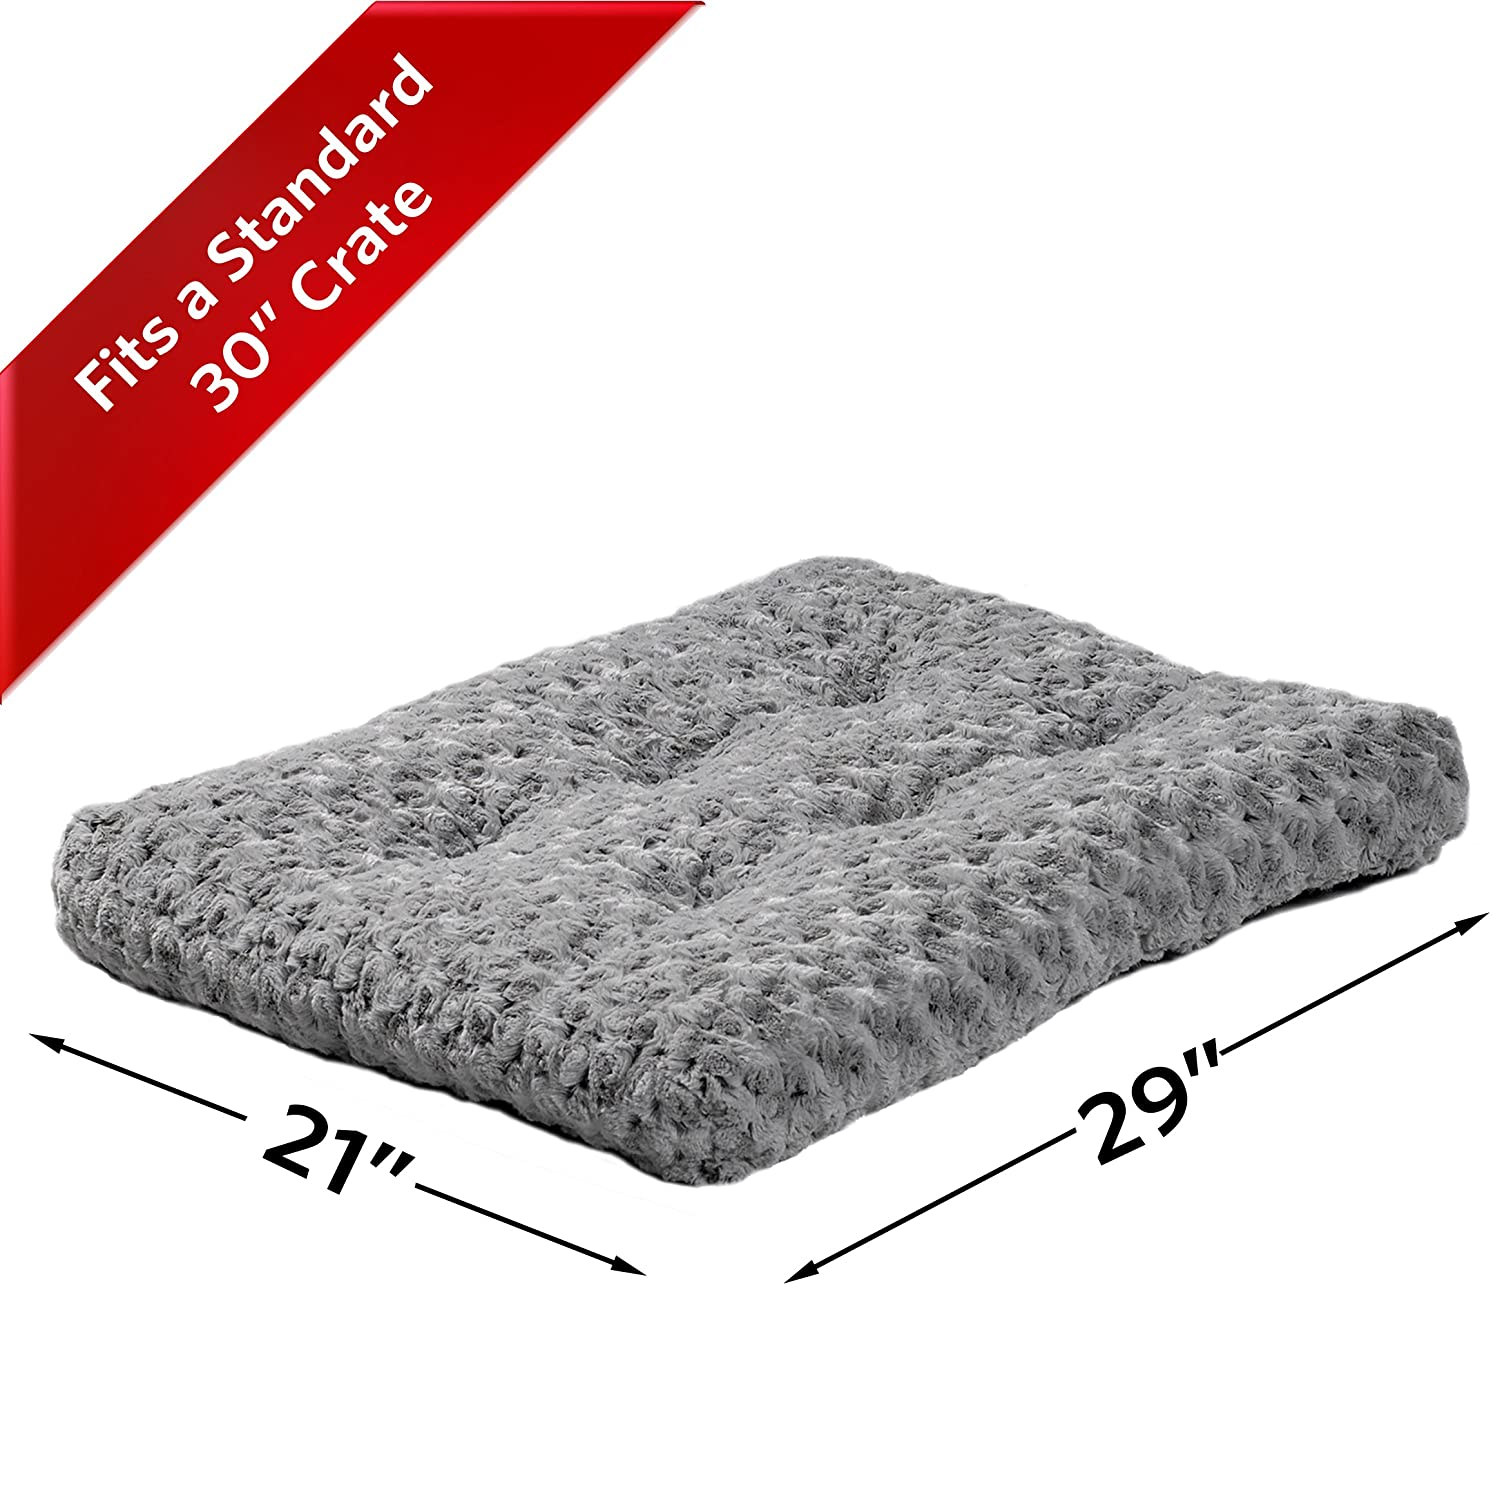 Amazon MidWest Quiet Time Pet Bed Deluxe Gray Ombre Swirl 29